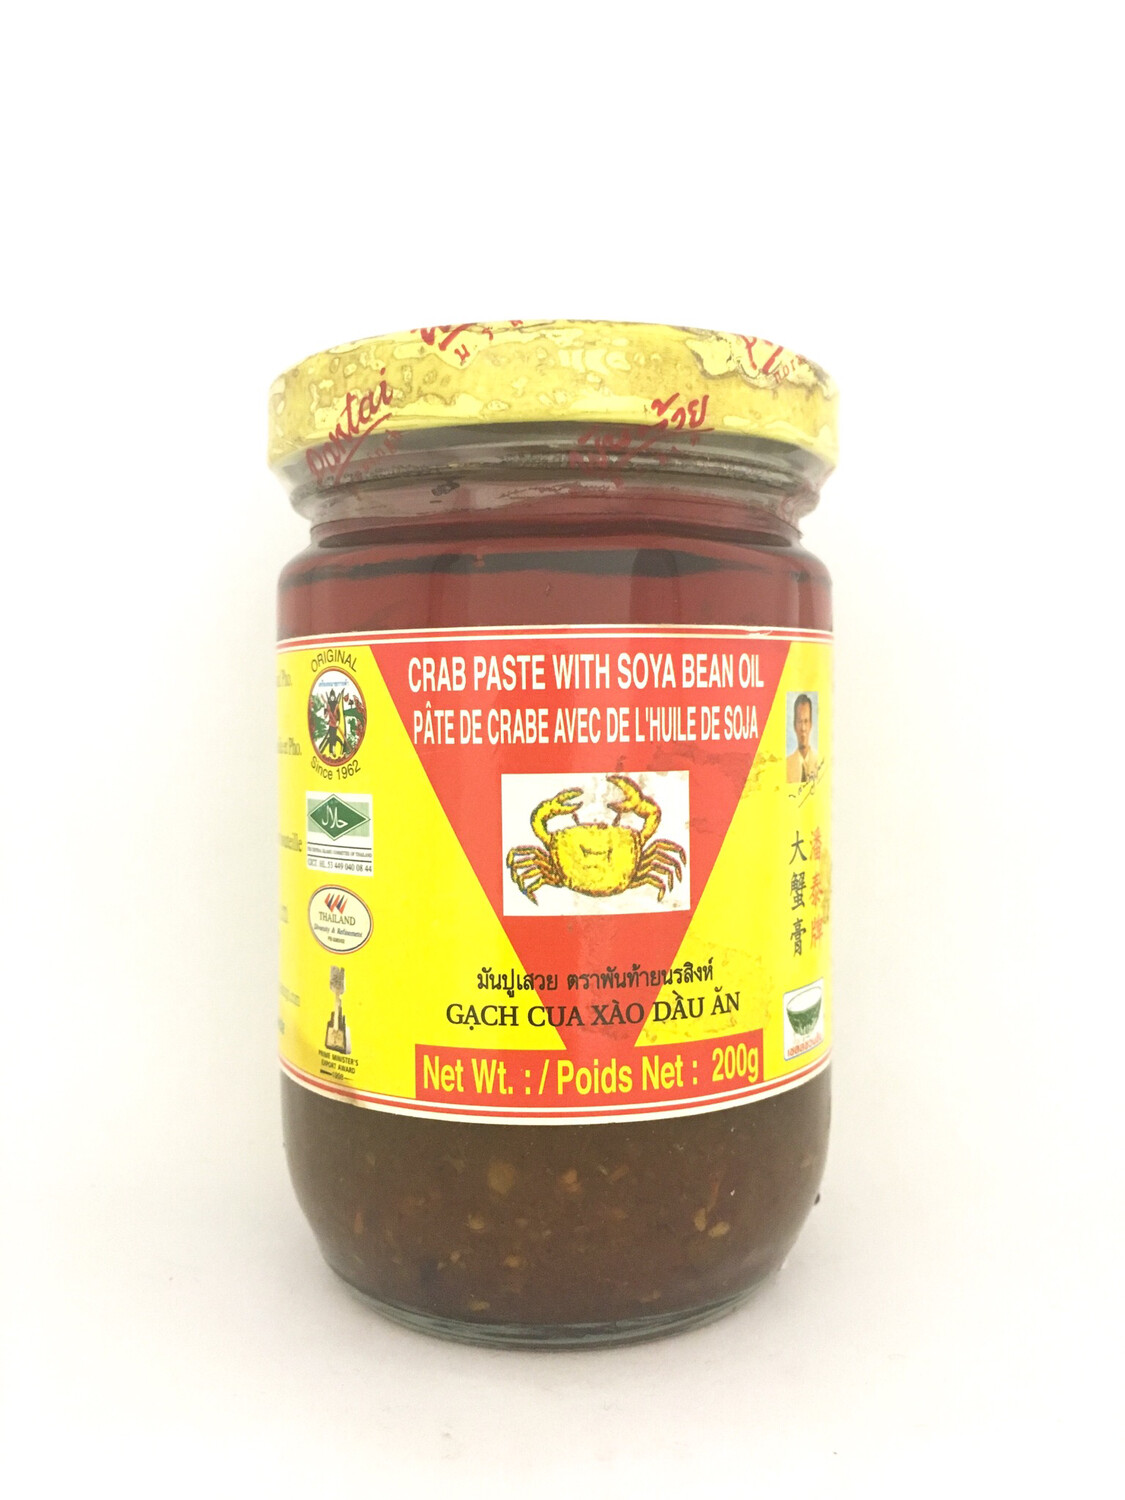 PANTAI CRAB PASTE WITH SOYA BEAN OIL 24X200G